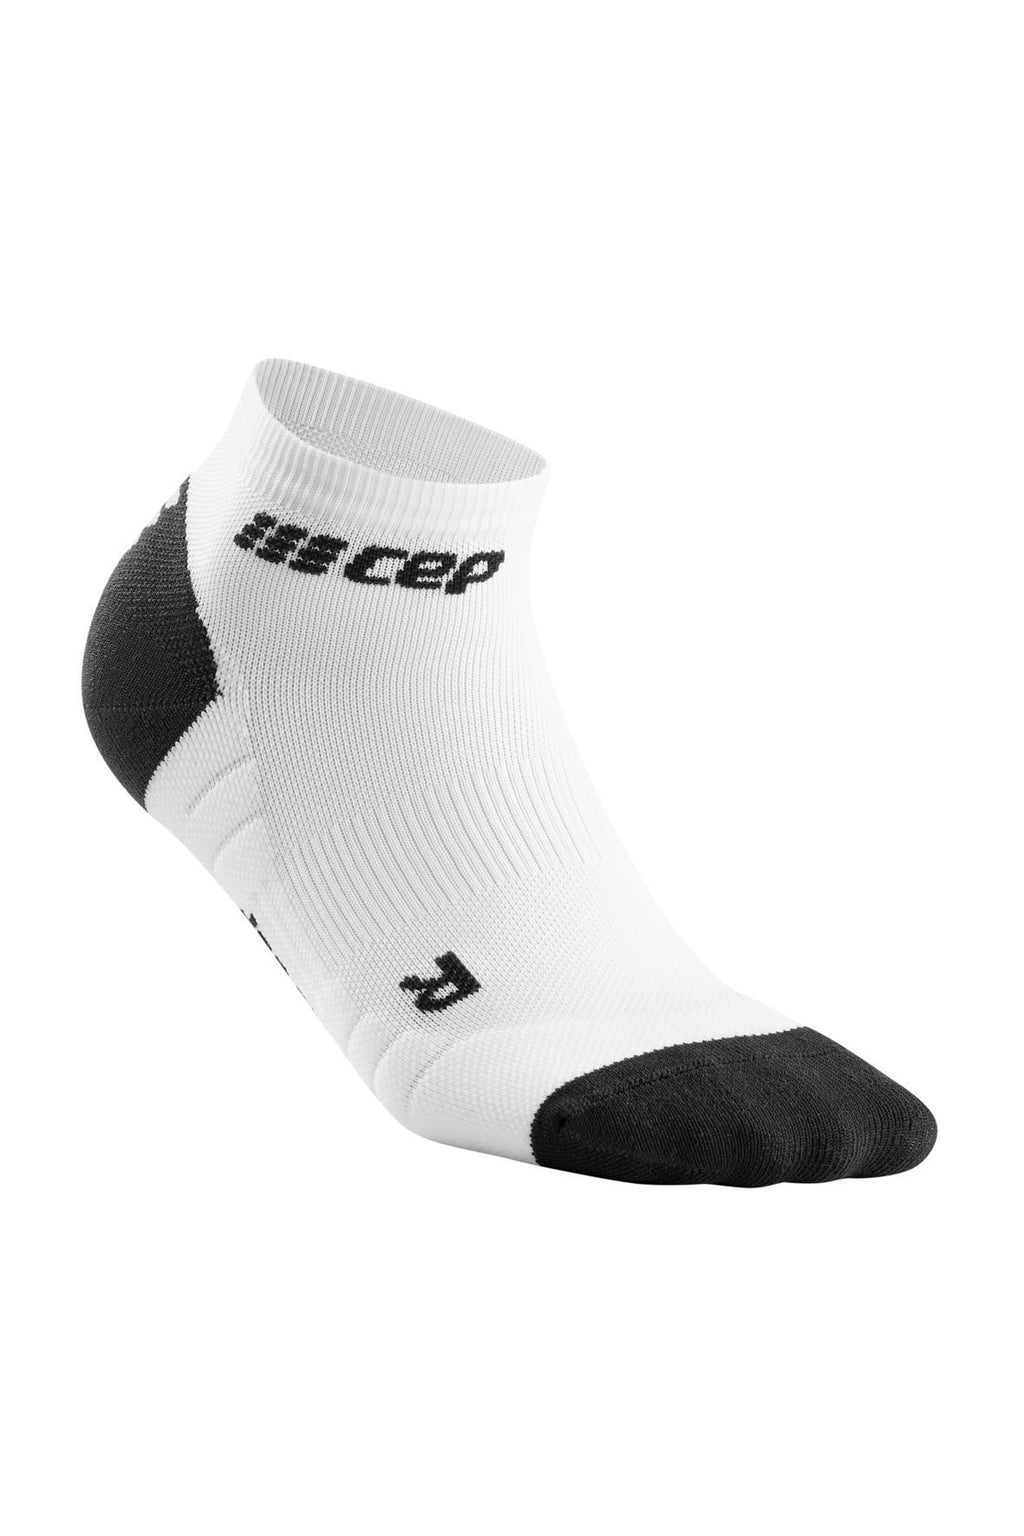 Women's Low Cut Socks 3.0